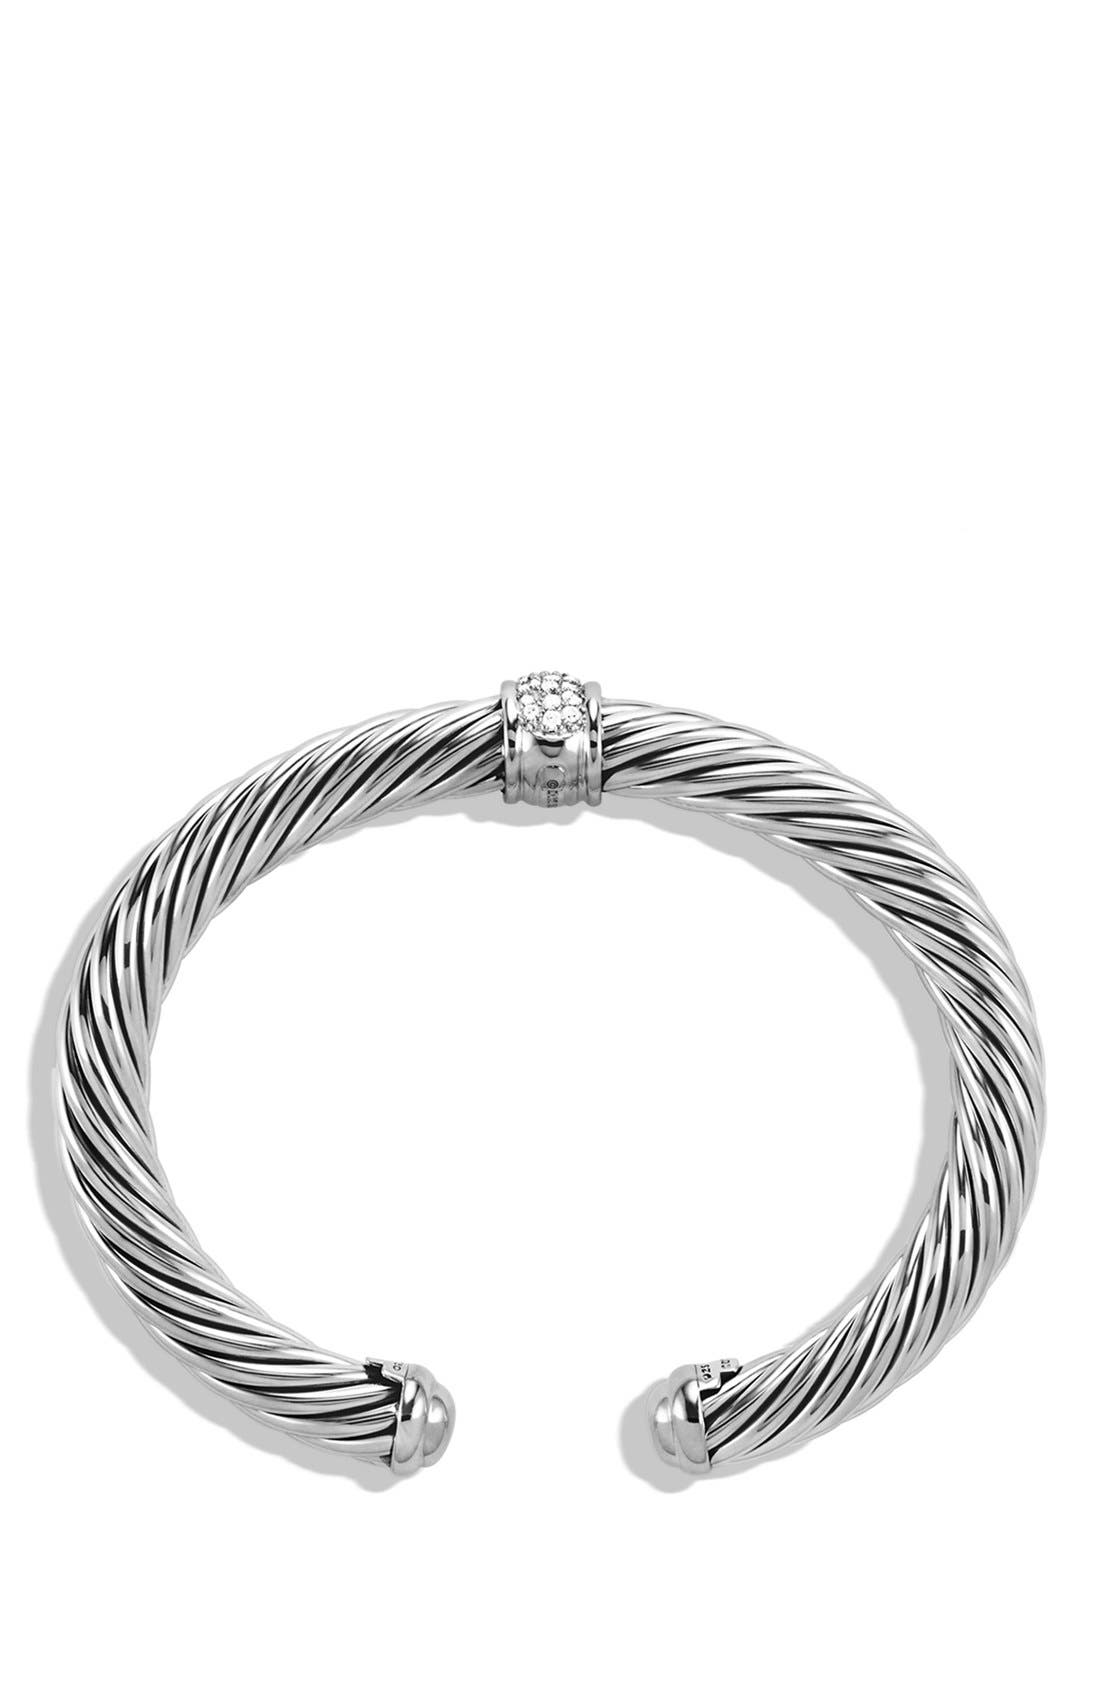 'Cable Classics' Bracelet with Diamonds and White Gold,                             Alternate thumbnail 2, color,                             DIAMOND